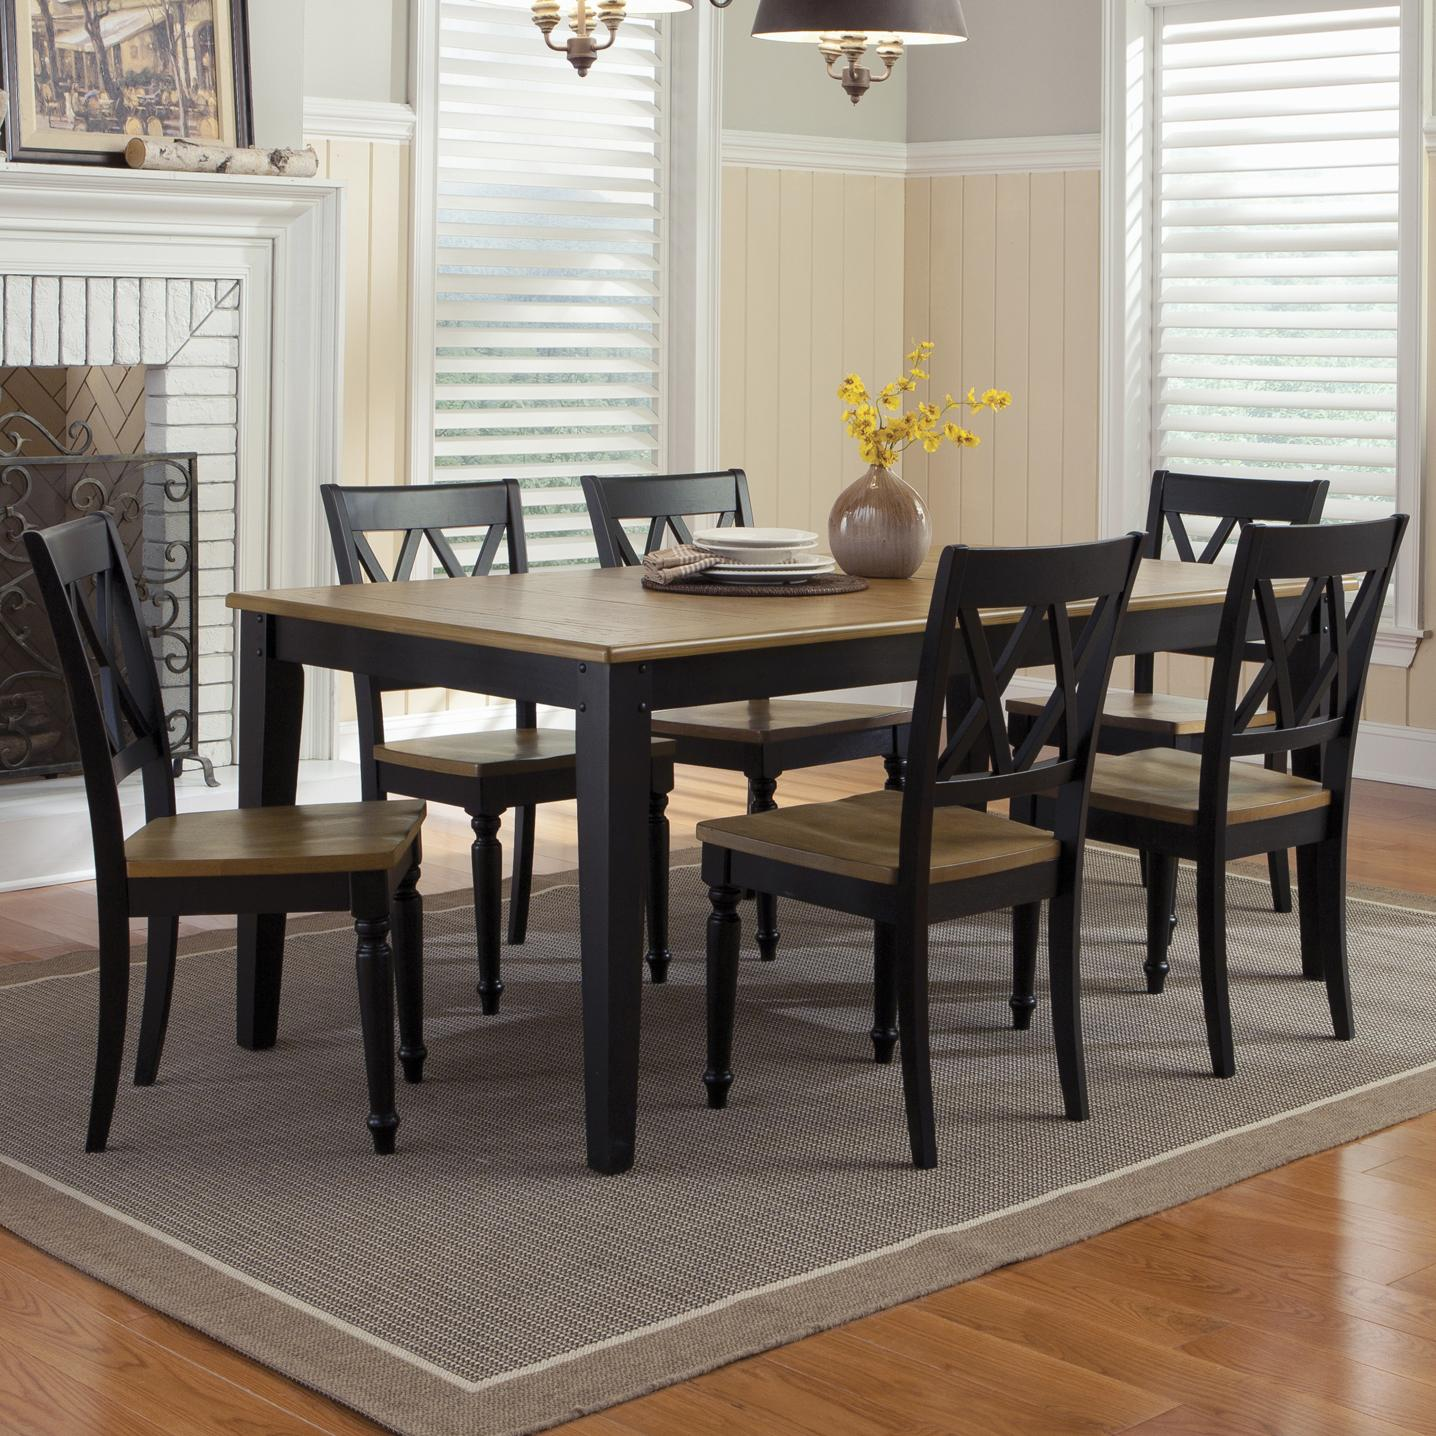 Al Fresco II 7 Piece Rectangular Table and Chairs Set by Liberty Furniture at Lapeer Furniture & Mattress Center